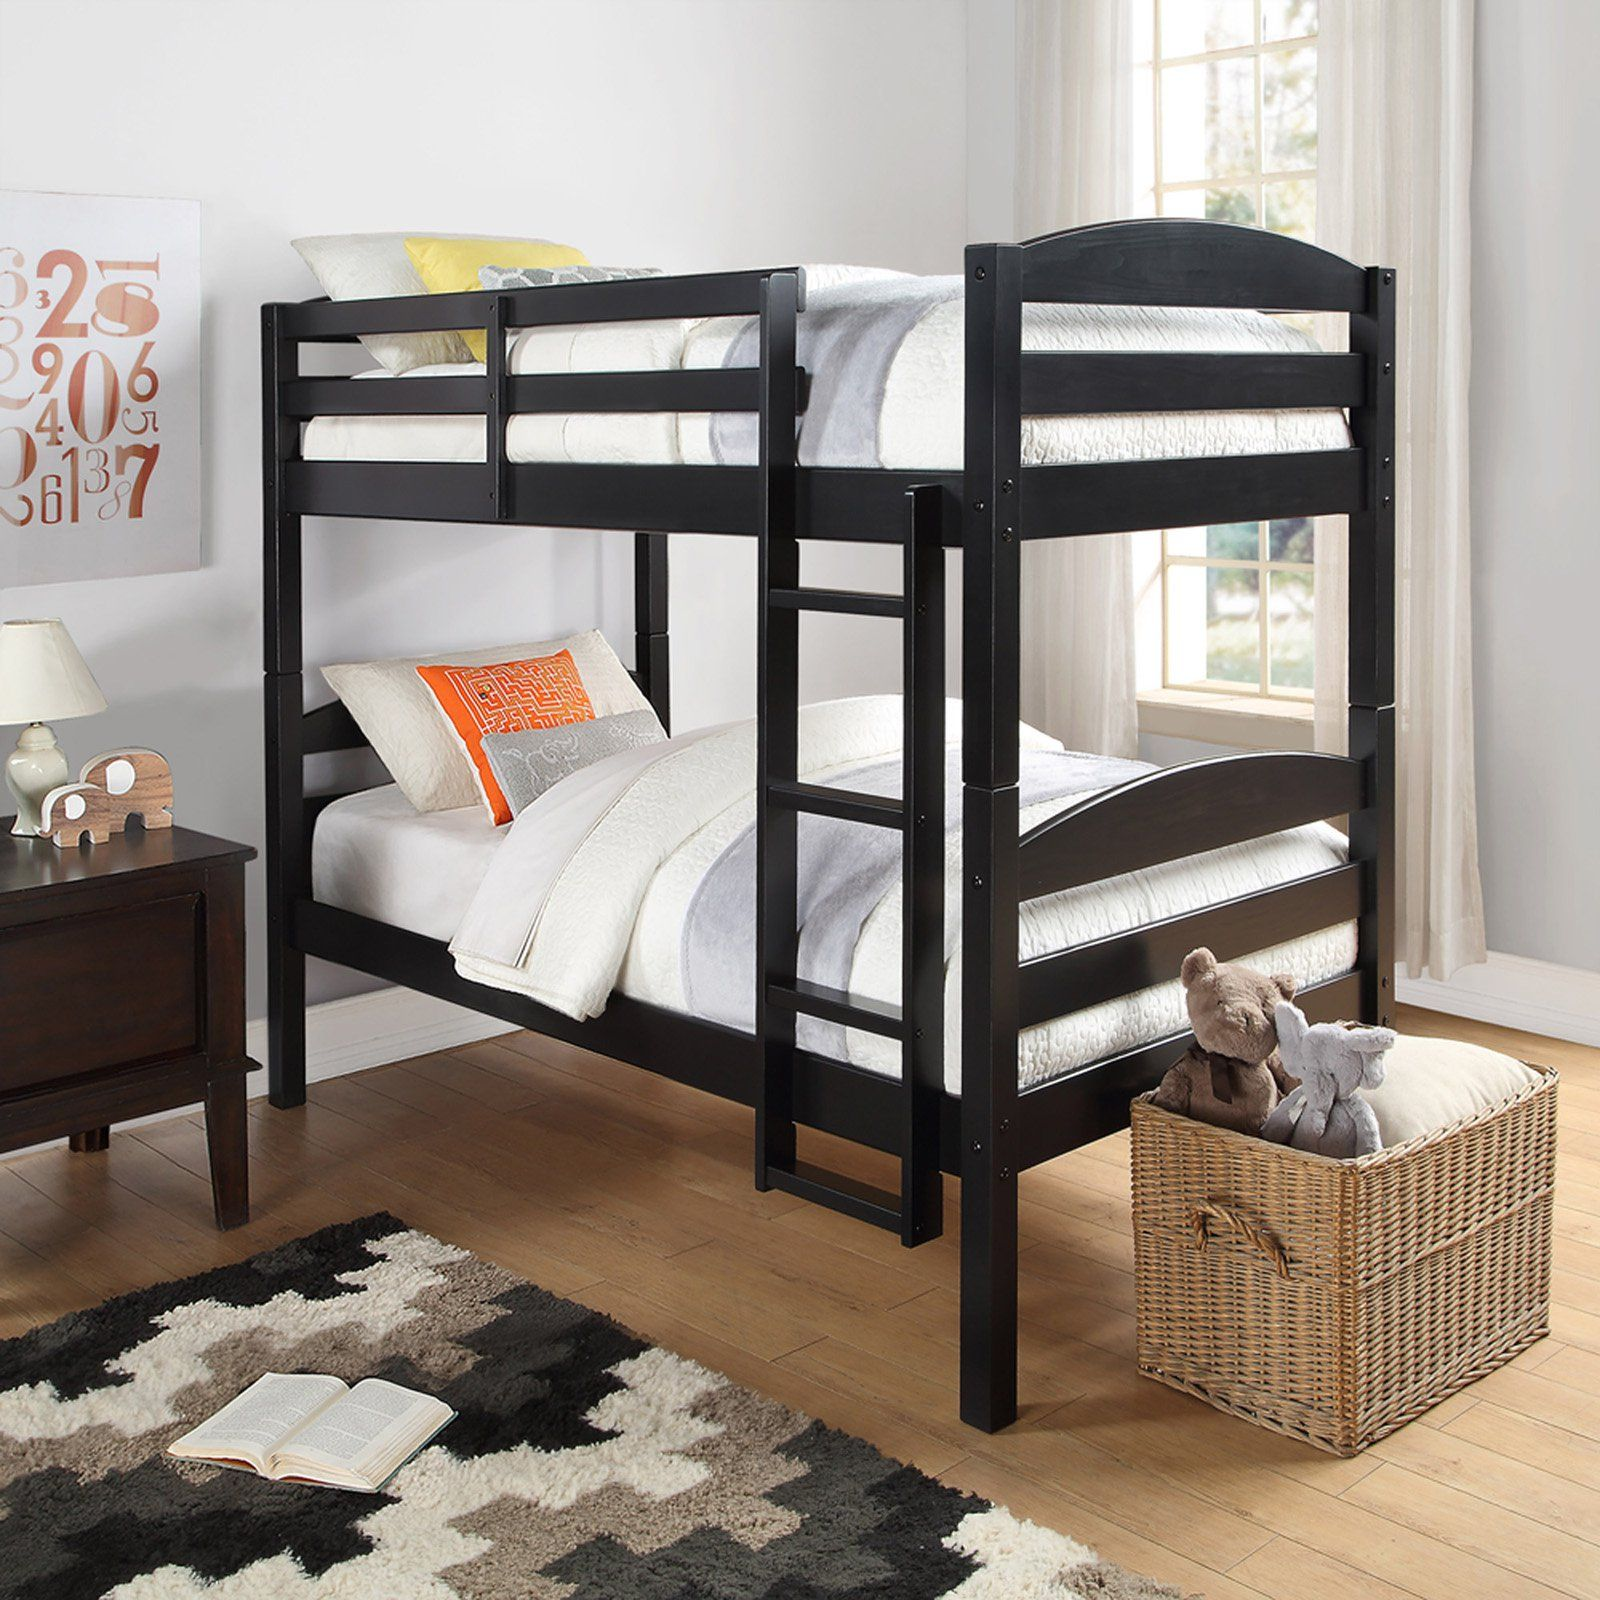 Better Homes Gardens Leighton Twin Over Twin Wood Bunk Bed Wood Bunk Beds Childrens Bedroom Furniture Kids Bunk Beds